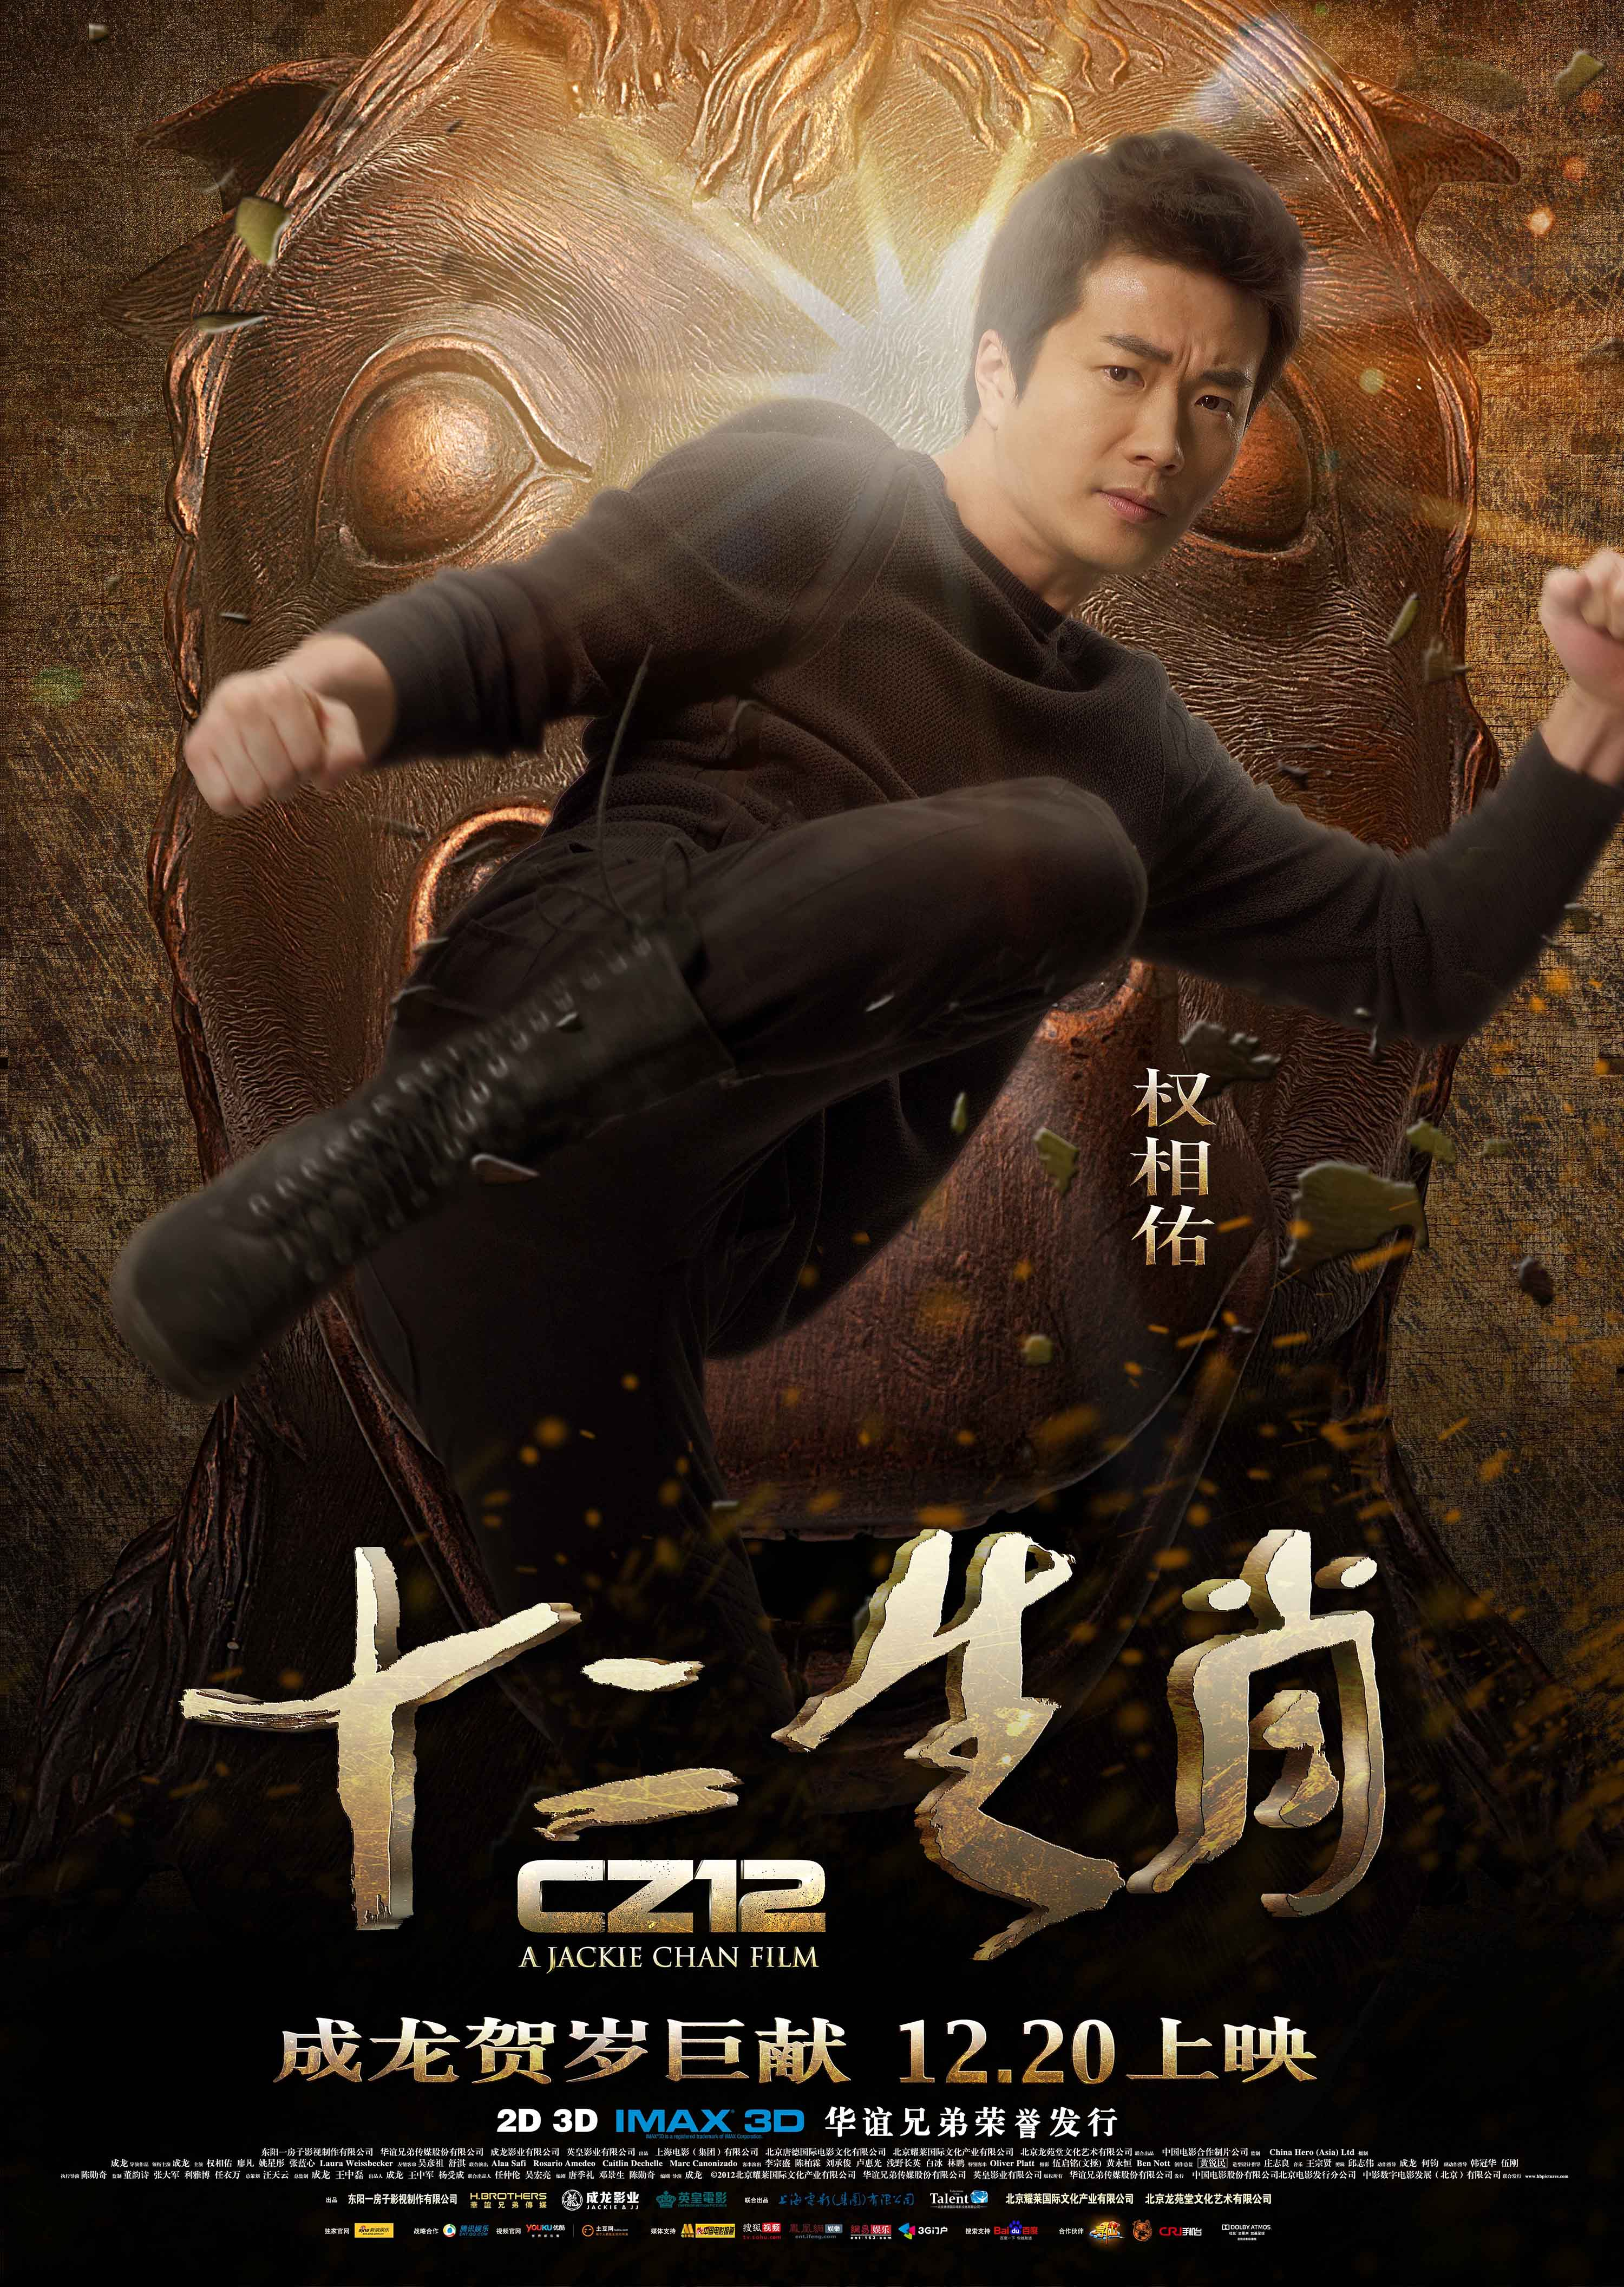 New Character Posters For Jackie Chan's Chinese Zodiac